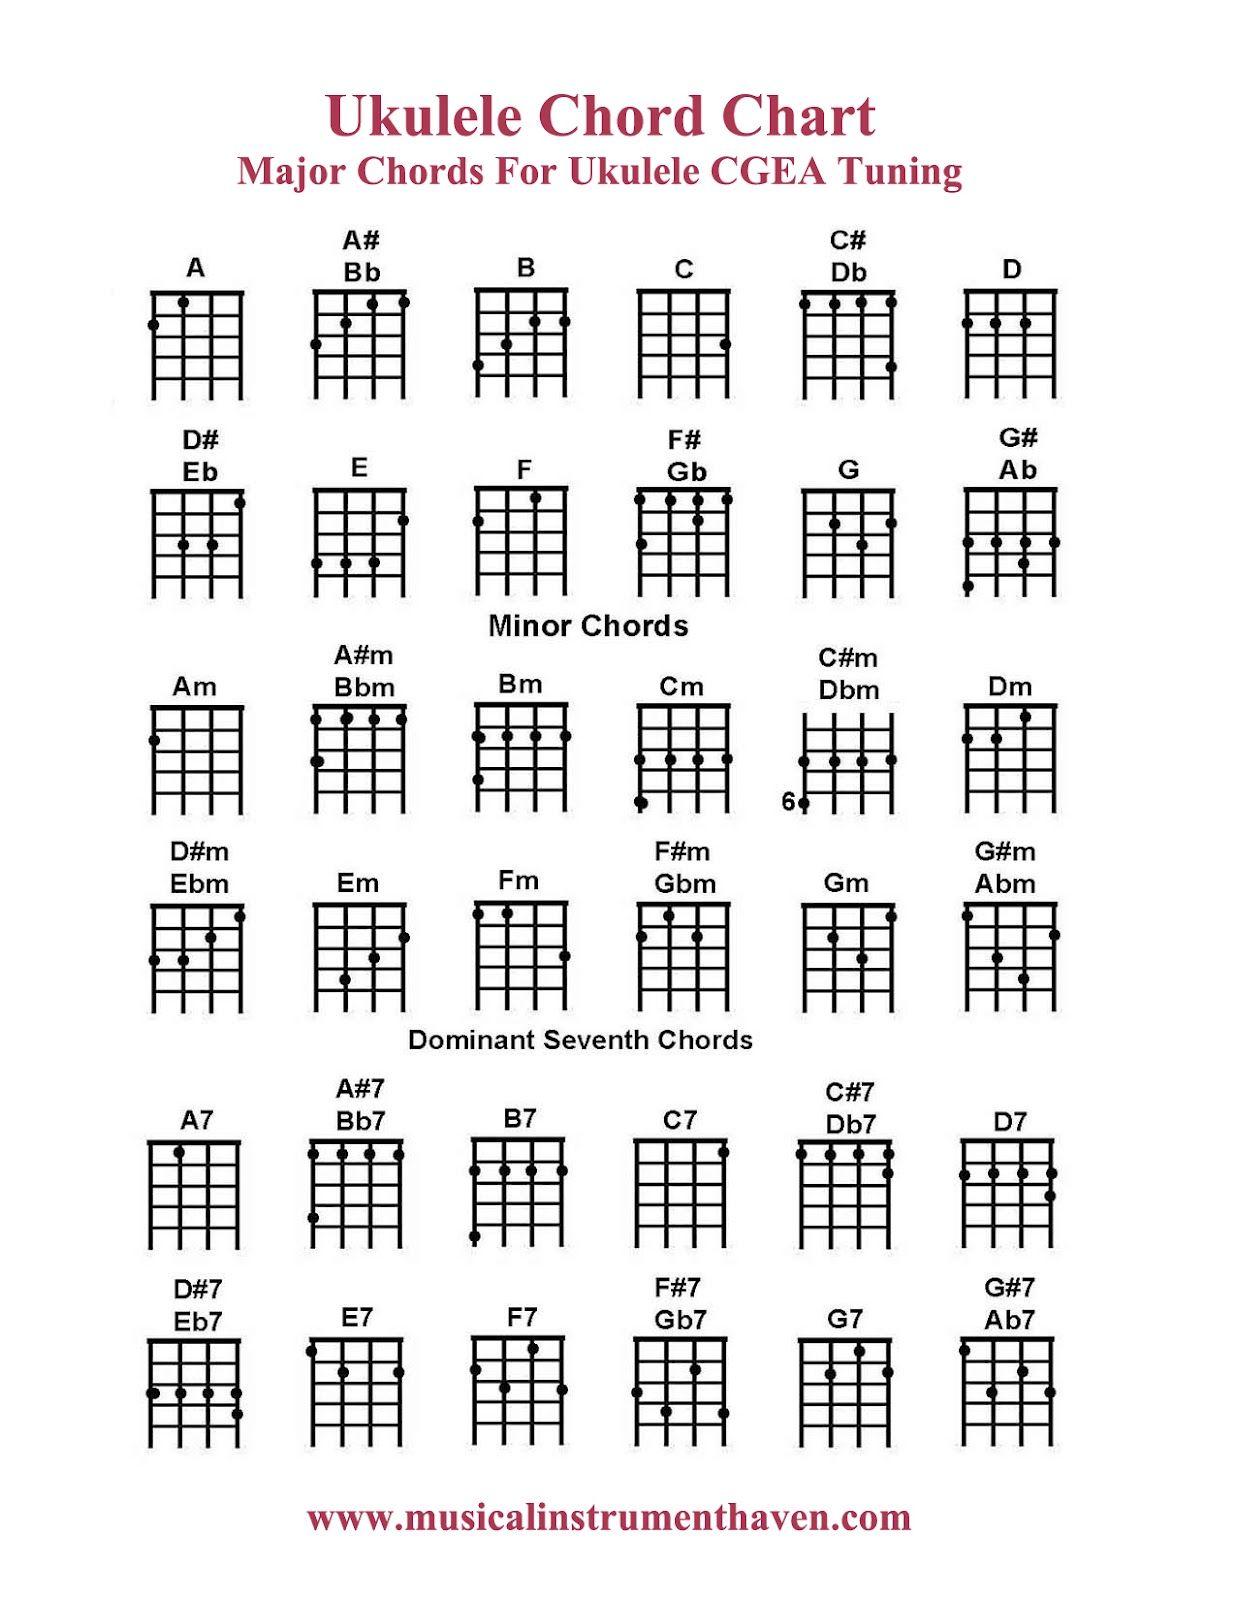 Bukuleleb bchordb chart major bchordsb cgea tuning explore ukulele tabs guitar chords and more hexwebz Choice Image